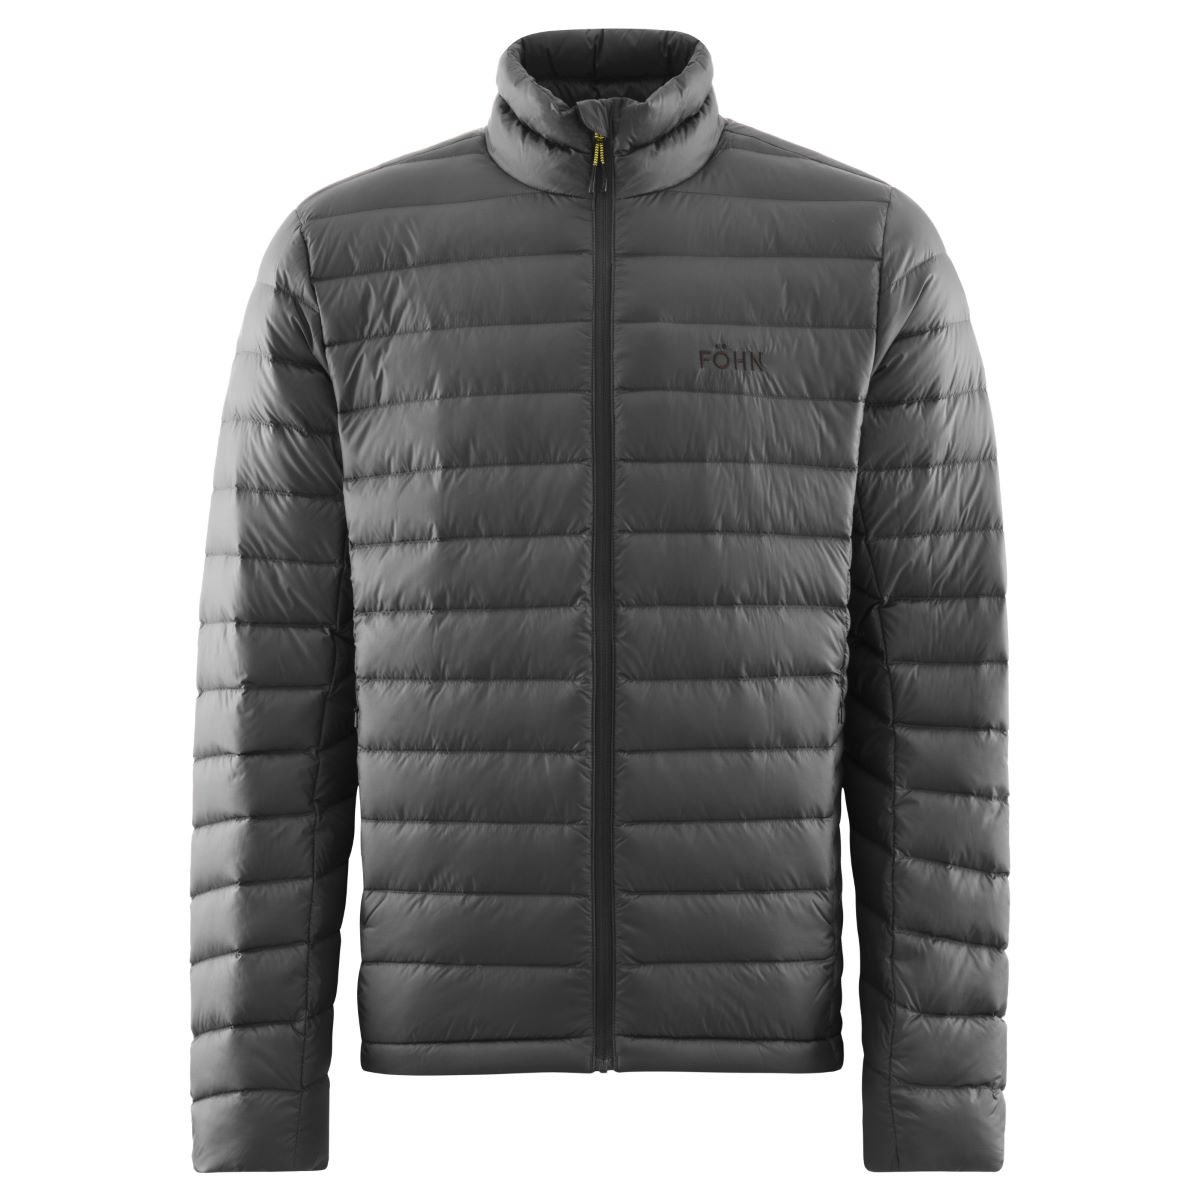 Fohn - Micro Down Jacket - Small Gris | Vestes